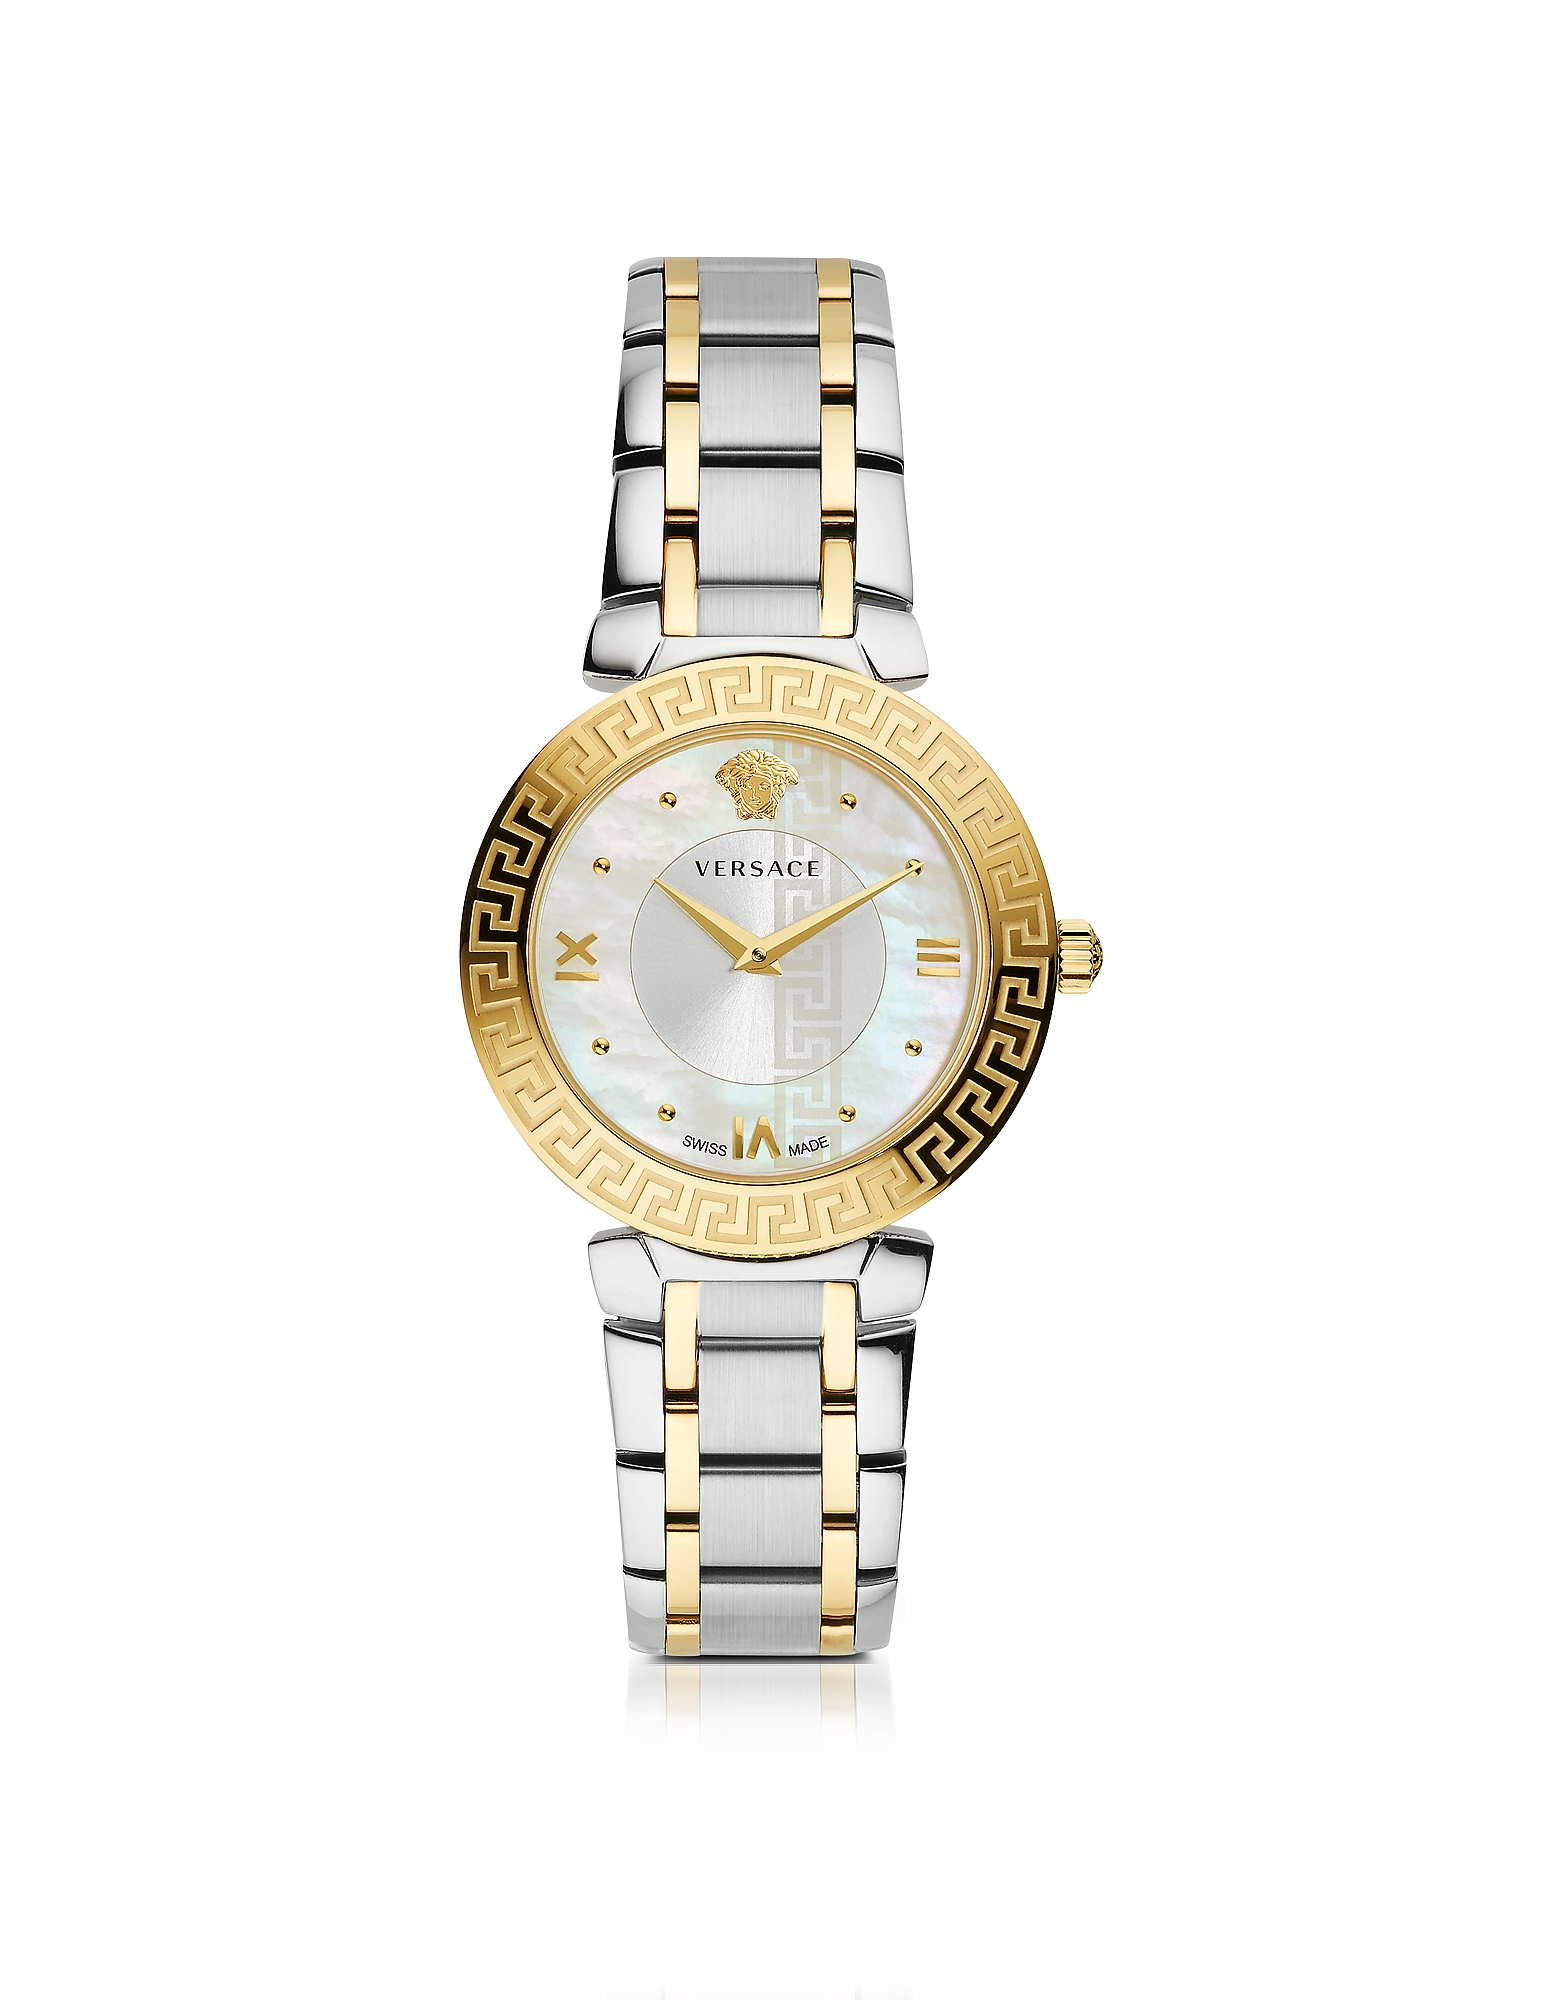 Versace Women's Watches, Daphnis Two-Tone Stainless Steel Women's Watch w/Greek Engraving